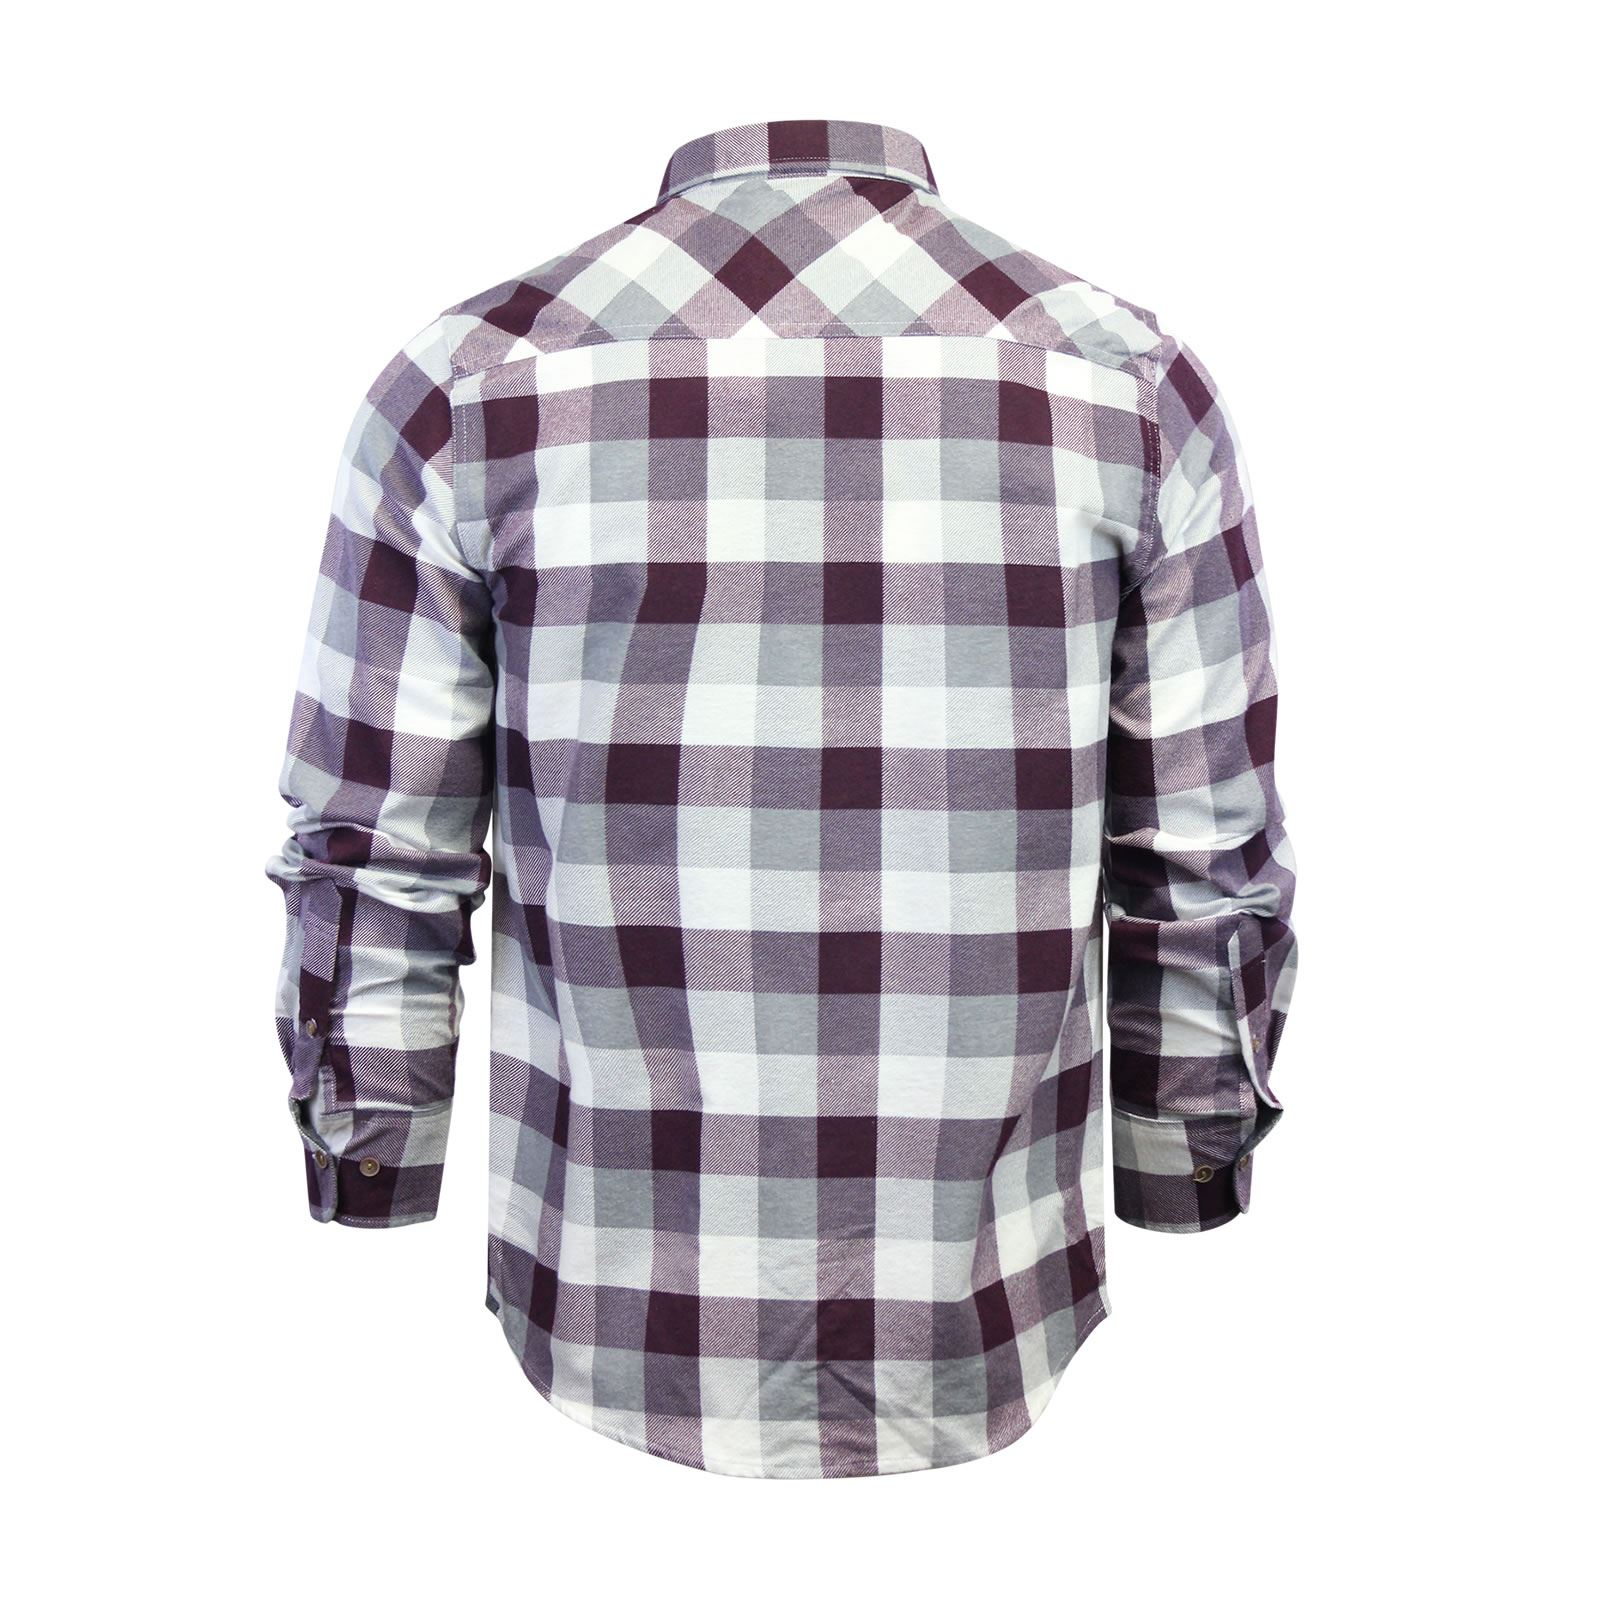 Mens-Check-Shirt-Brave-Soul-Flannel-Brushed-Cotton-Long-Sleeve-Casual-Top thumbnail 115